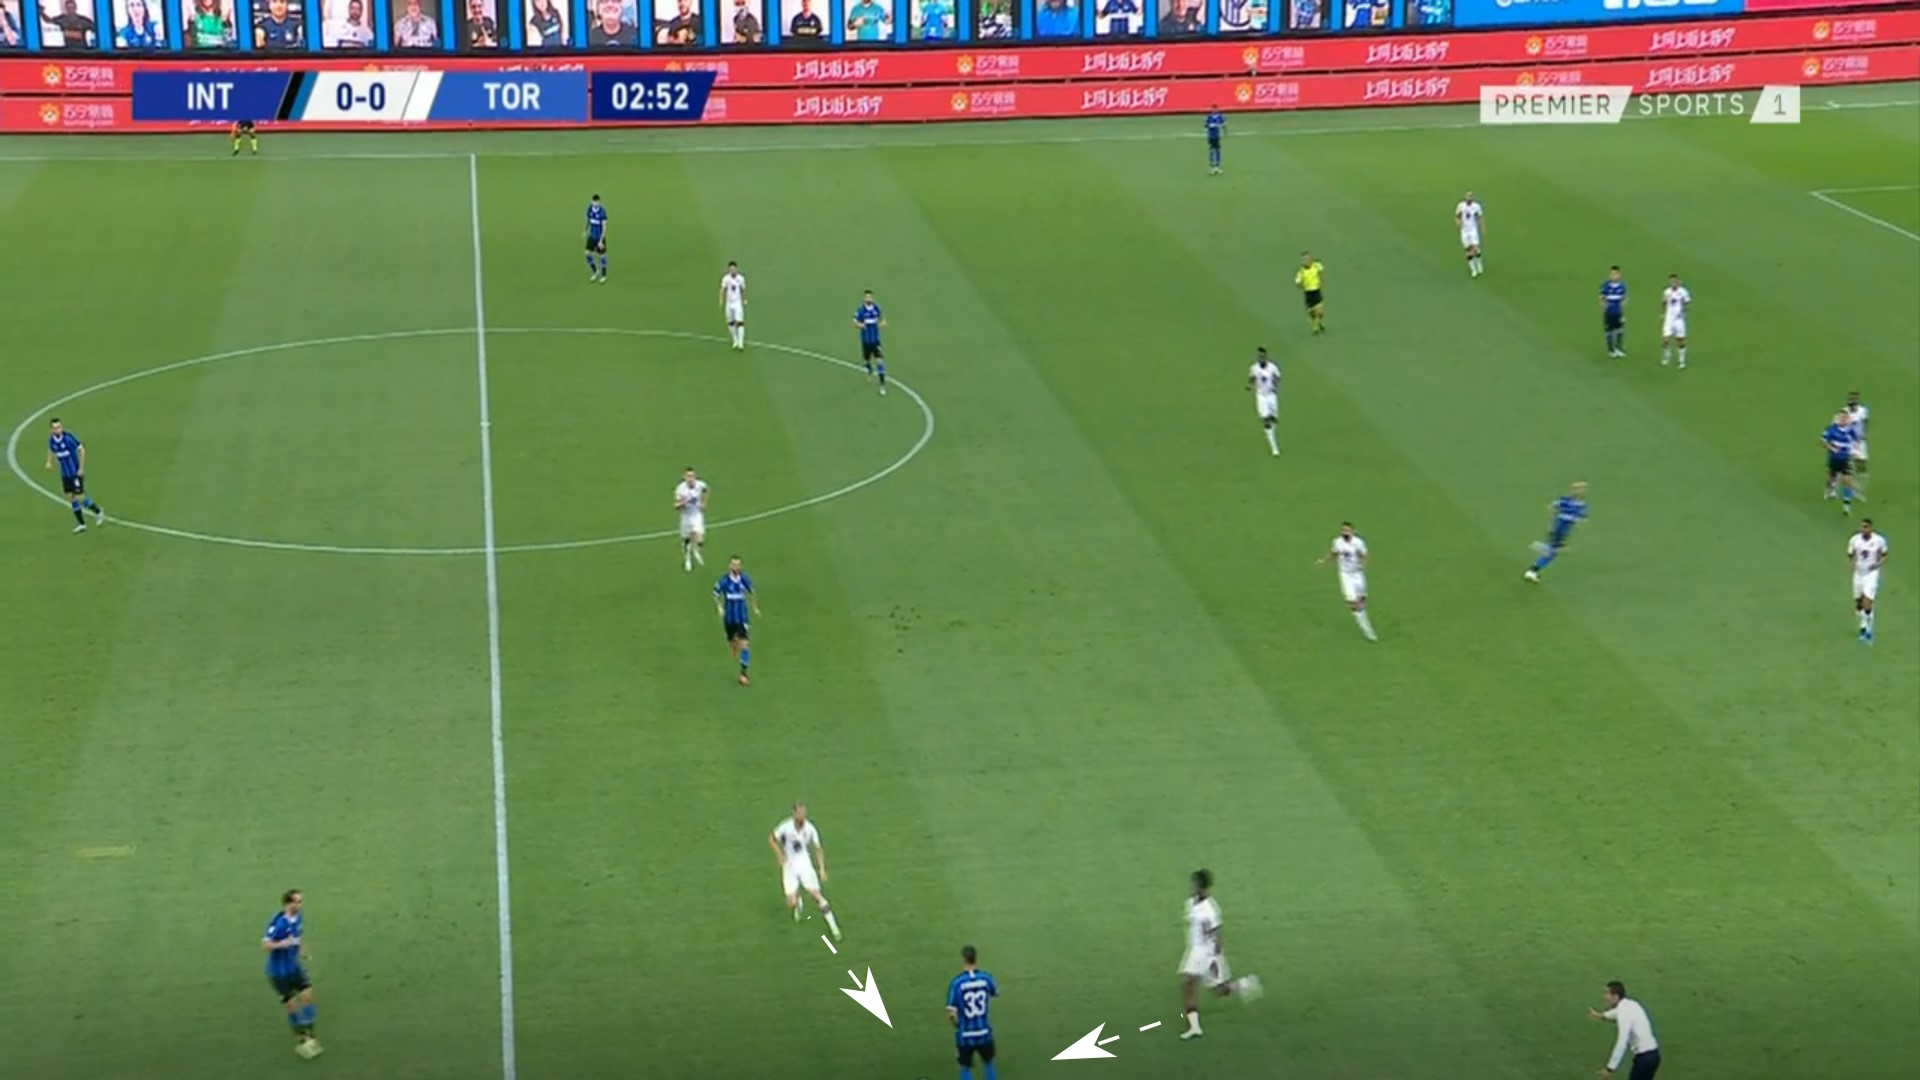 Serie A 2019/20: Inter vs Torino - tactical analysis tactics